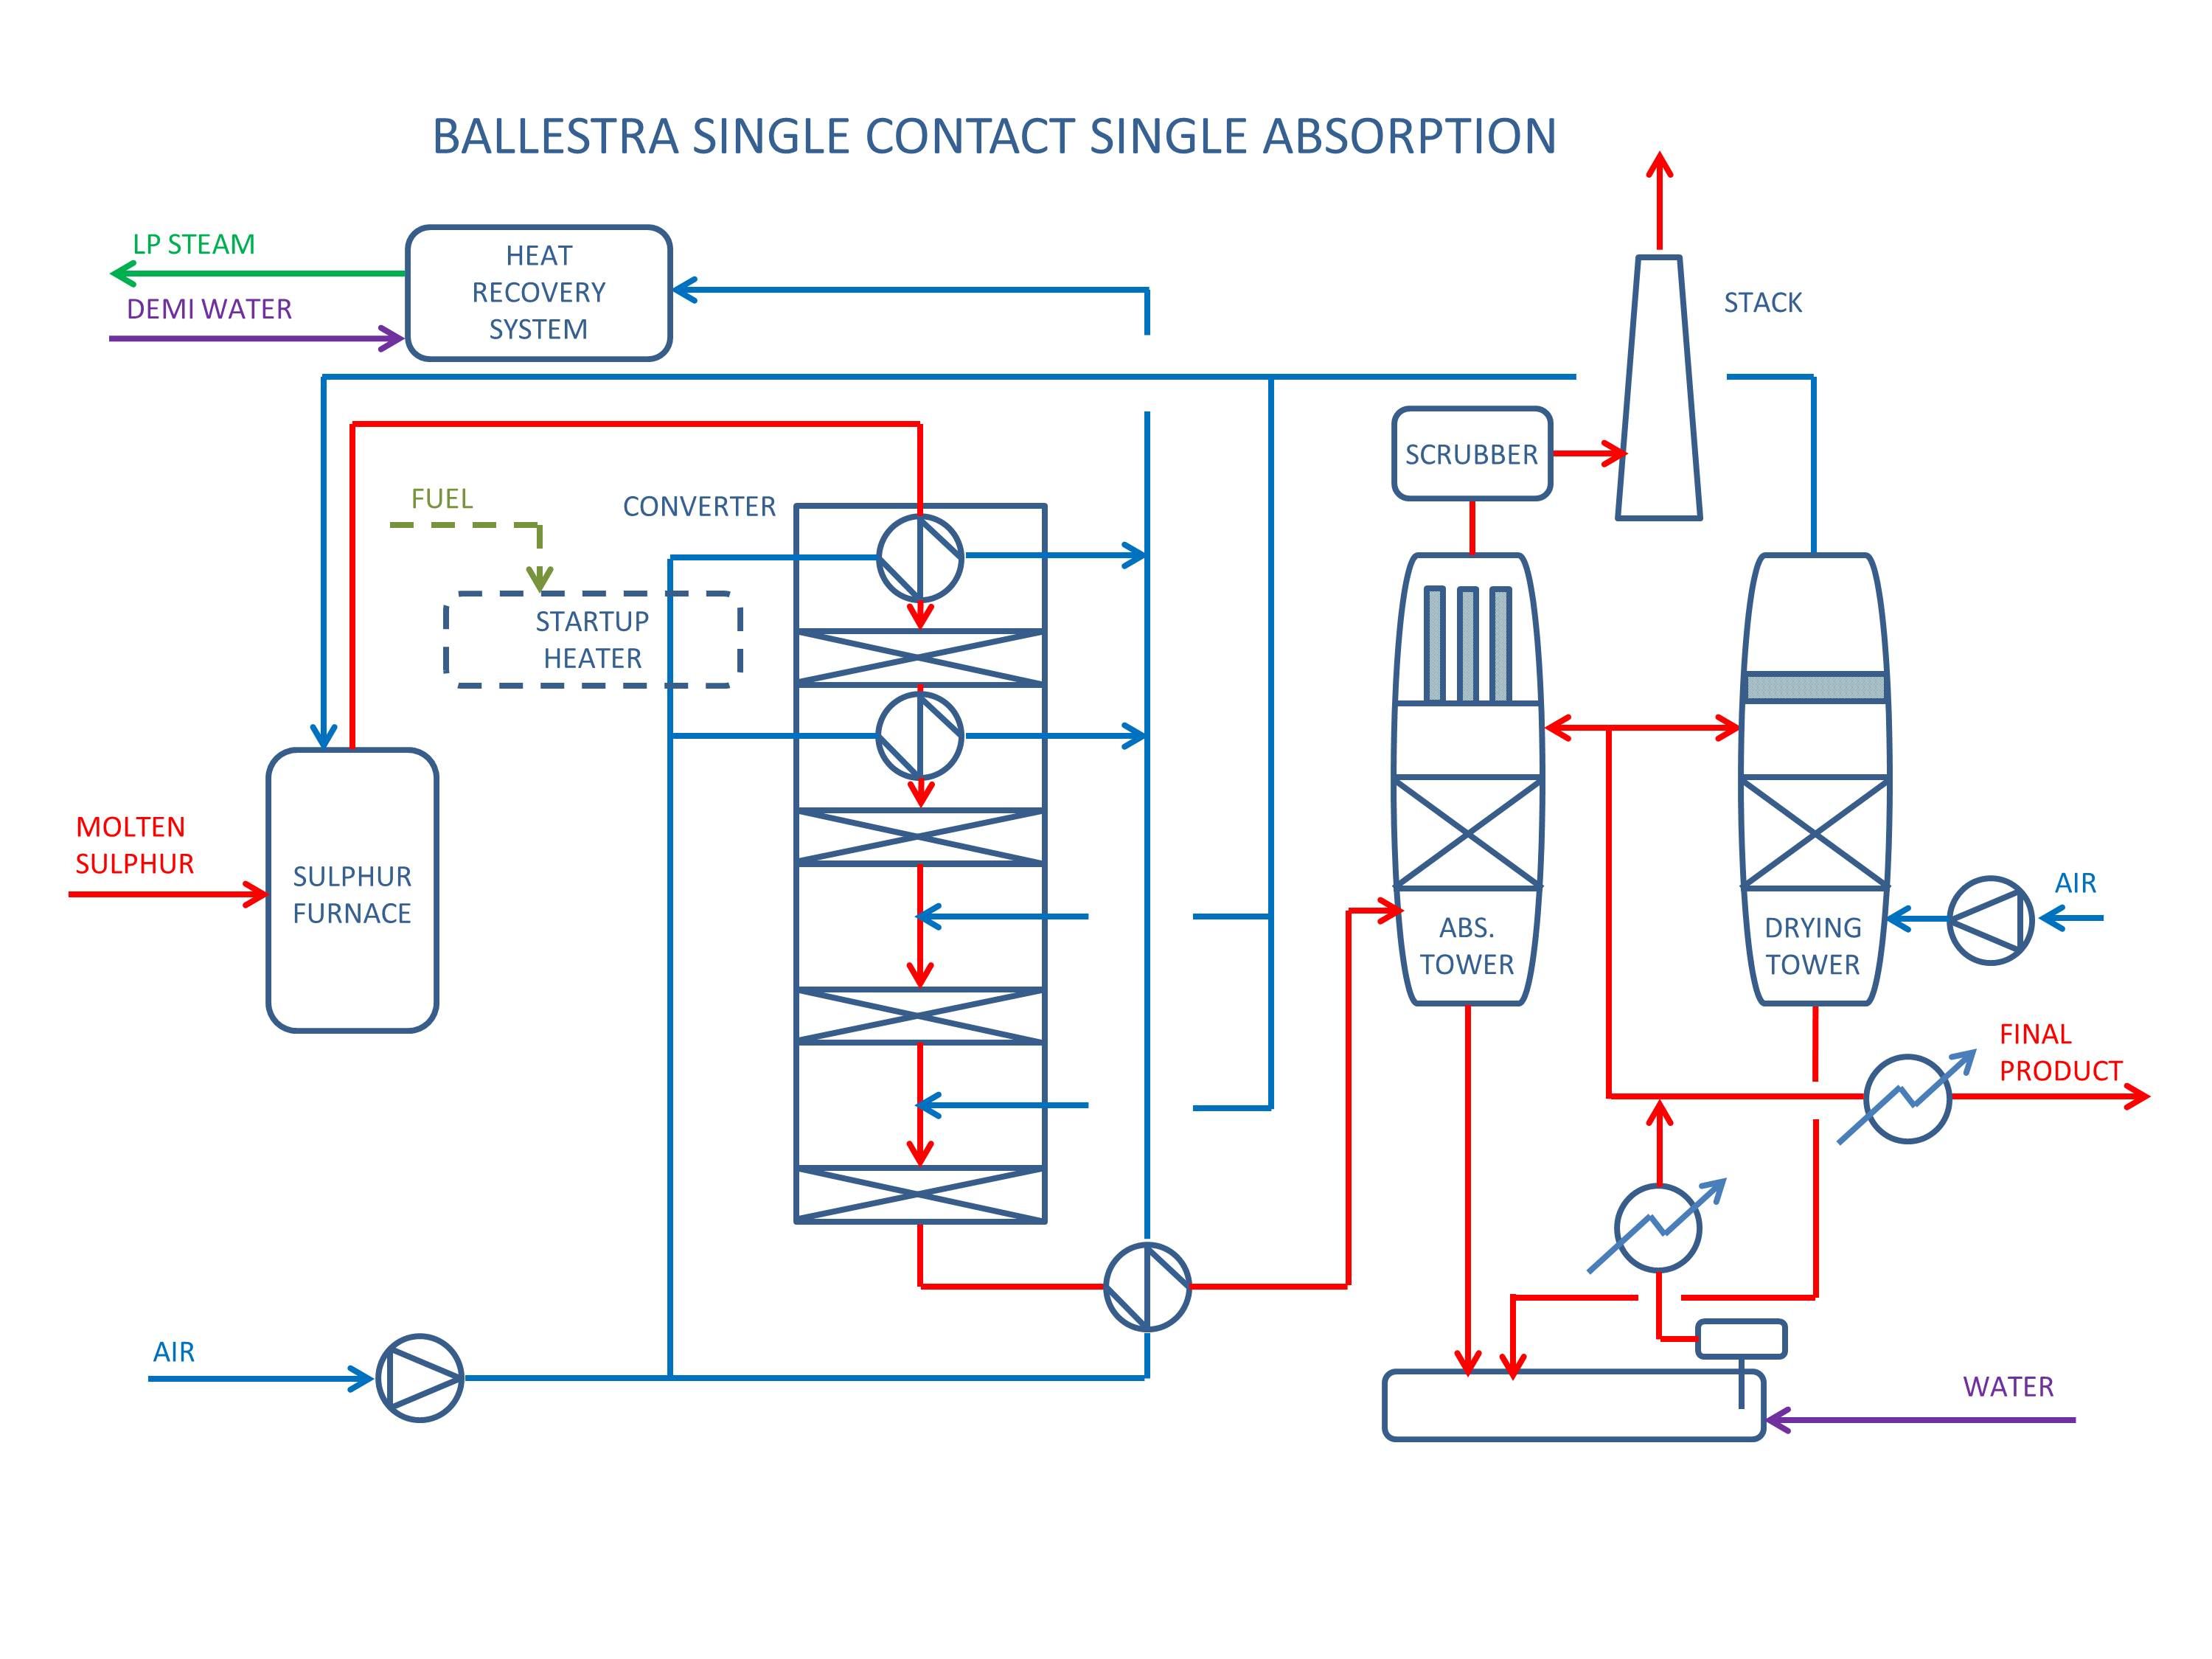 Desmet Ballestra Sulphuric Acid Production Plants Power Plant Diagrams Process The Conversion Factor For A Scsa Is 985 Typically Requiring Tail Gas Scrubber To Control So2 Stack Emissions